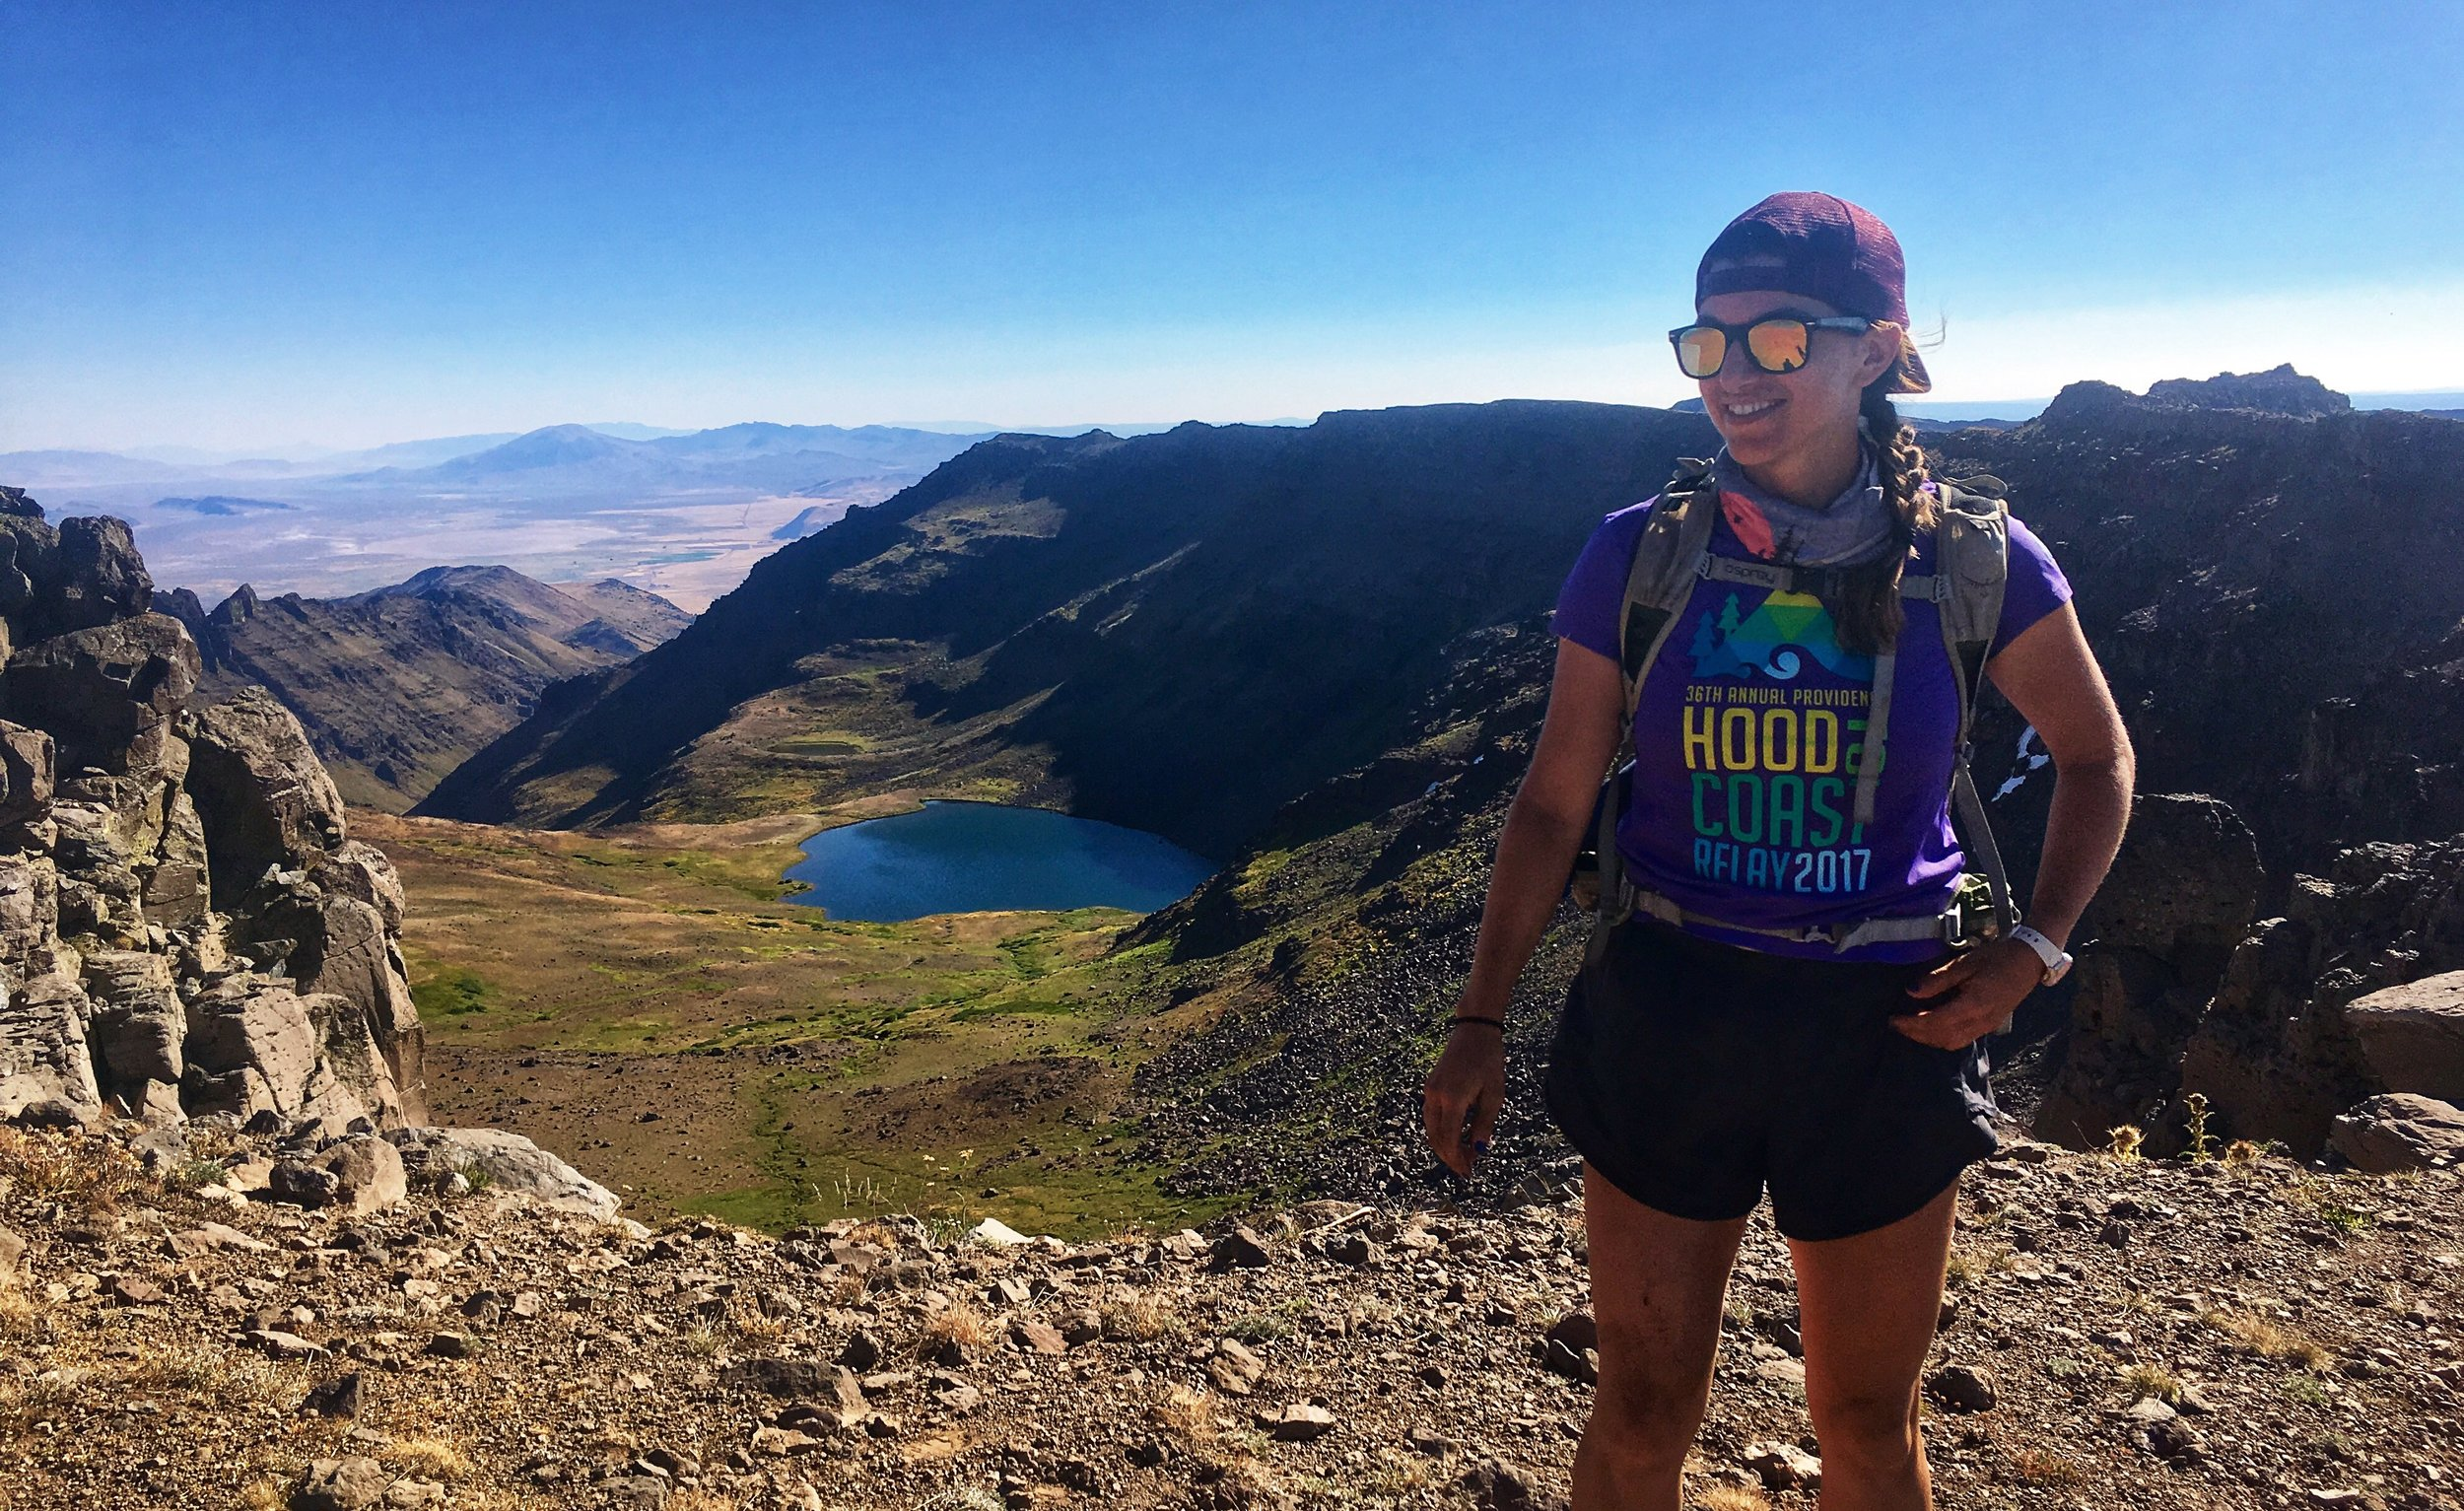 Emily Estrada - Whether she's running on a mountain, riding a bike, playing ultimate frisbee, or clipped in and ready to climb, you can be sure of two things: Emily is a warrior and she's wearing a smile! Her spirit animal is a badger,